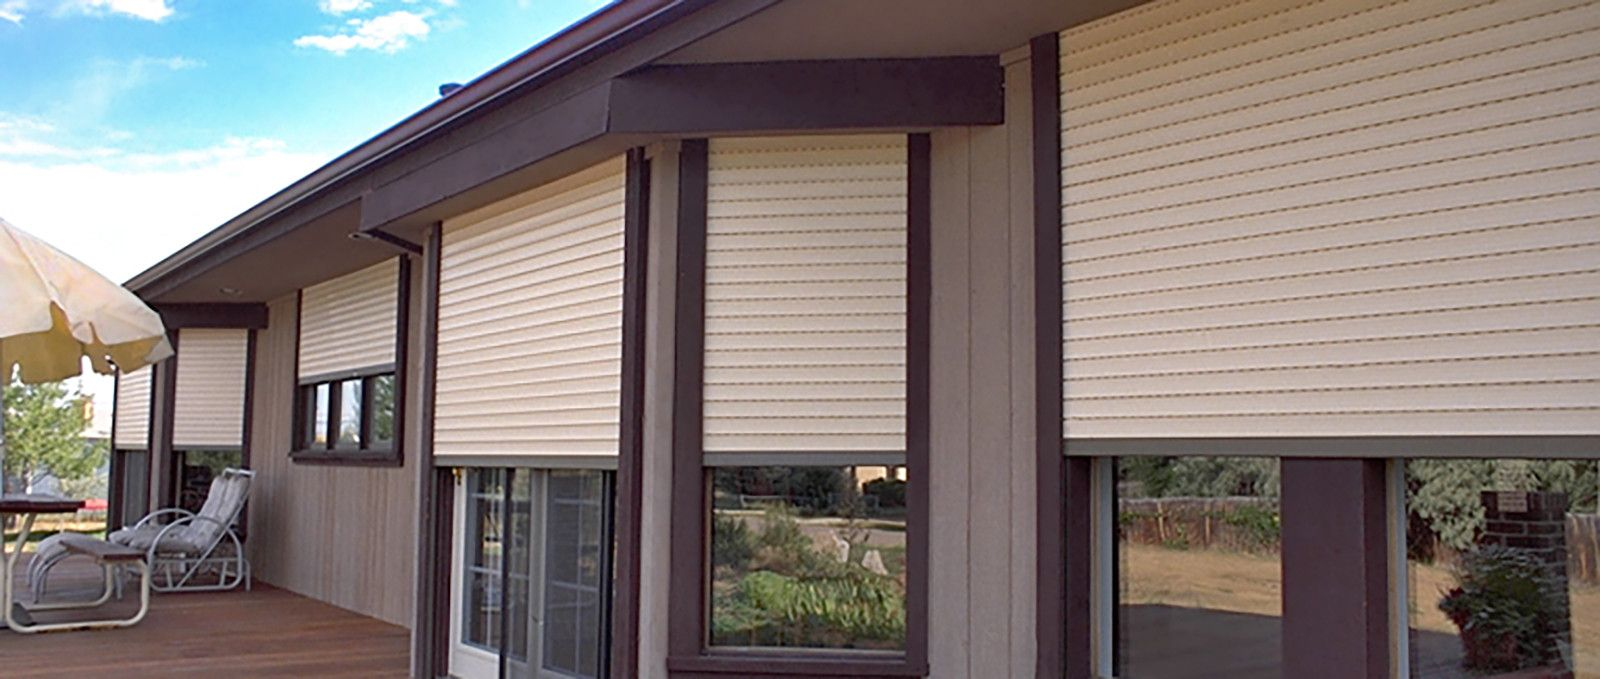 Exterior Window Protection. EXTERIOR WINDOW SHUTTERS FOR SUN ...